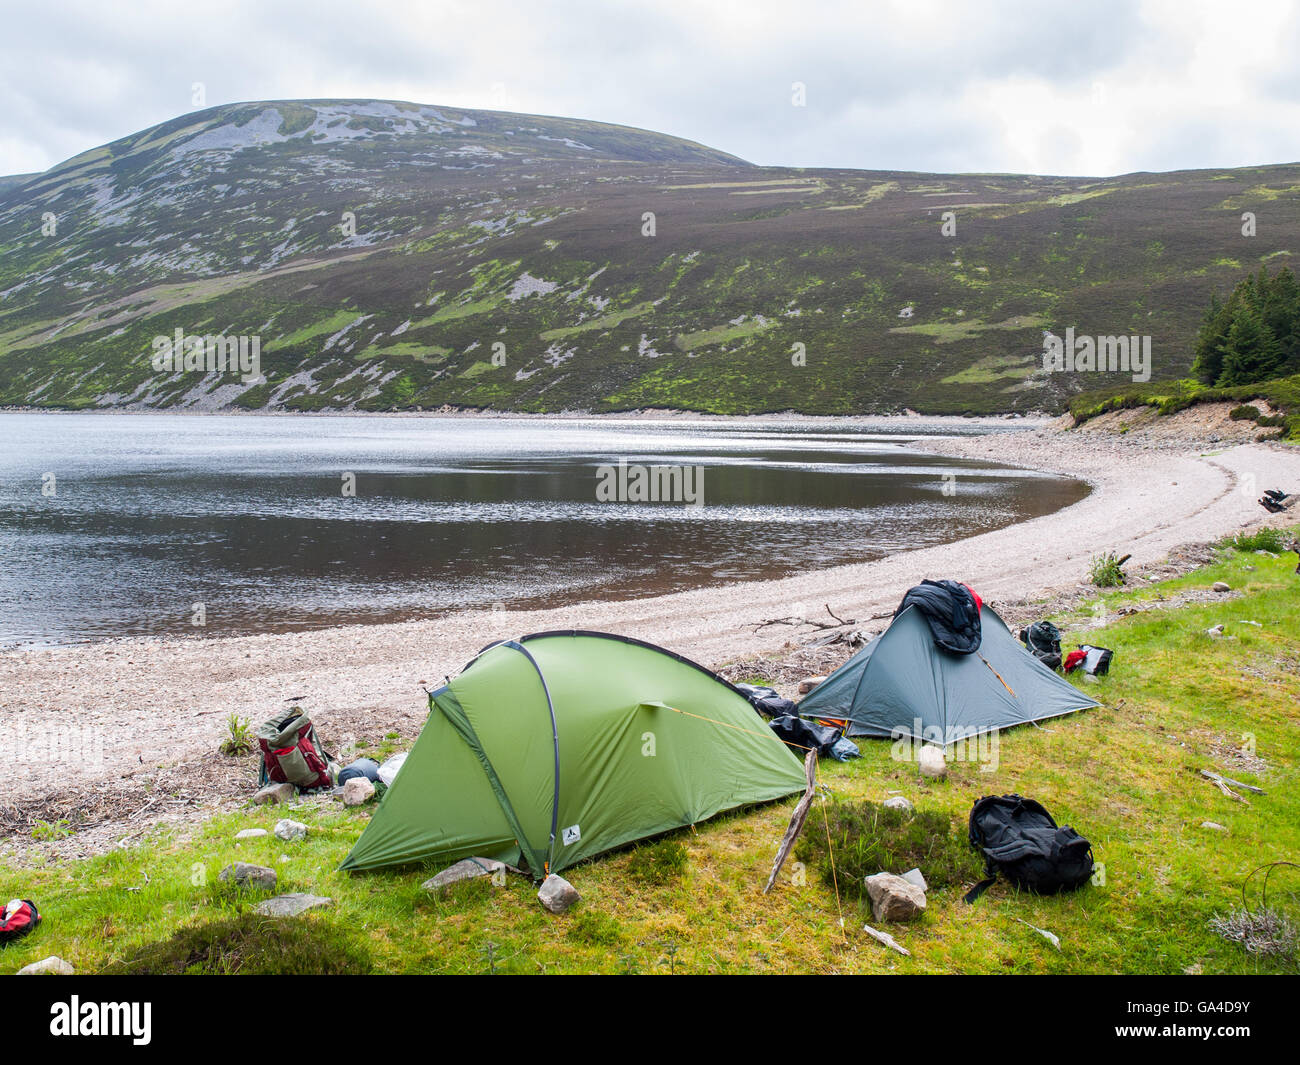 Two tents on a Loch shore in the Cairngorm mountains in Scotland - Stock Image